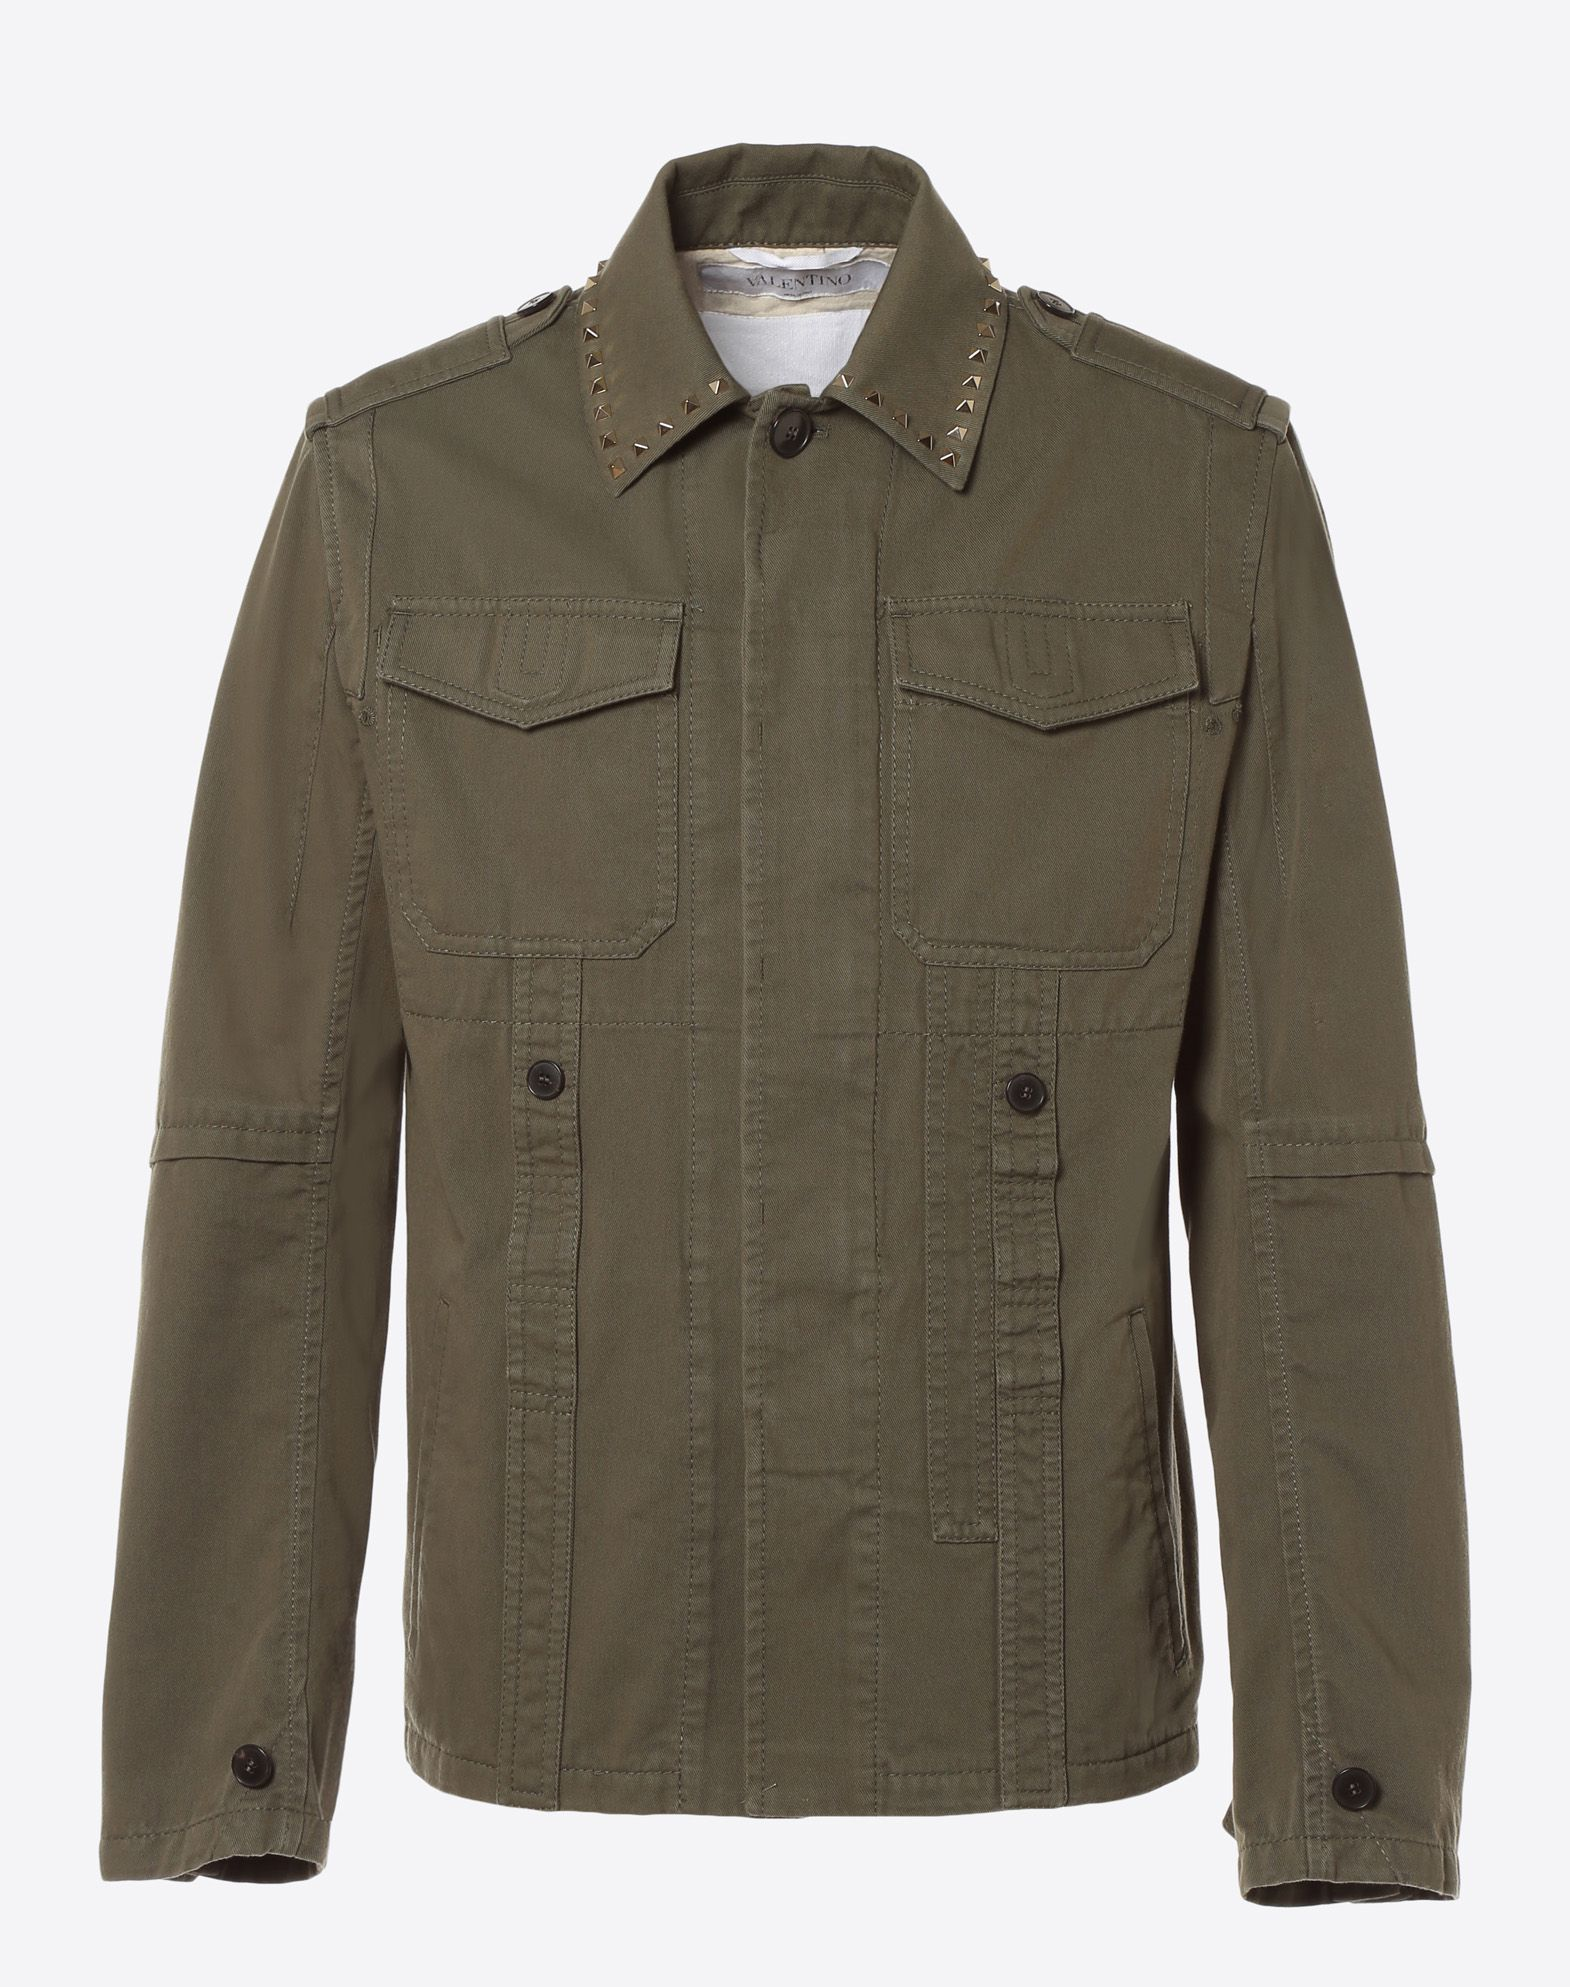 VALENTINO Rockstud Untitled Safari Jacket PEA COAT U f